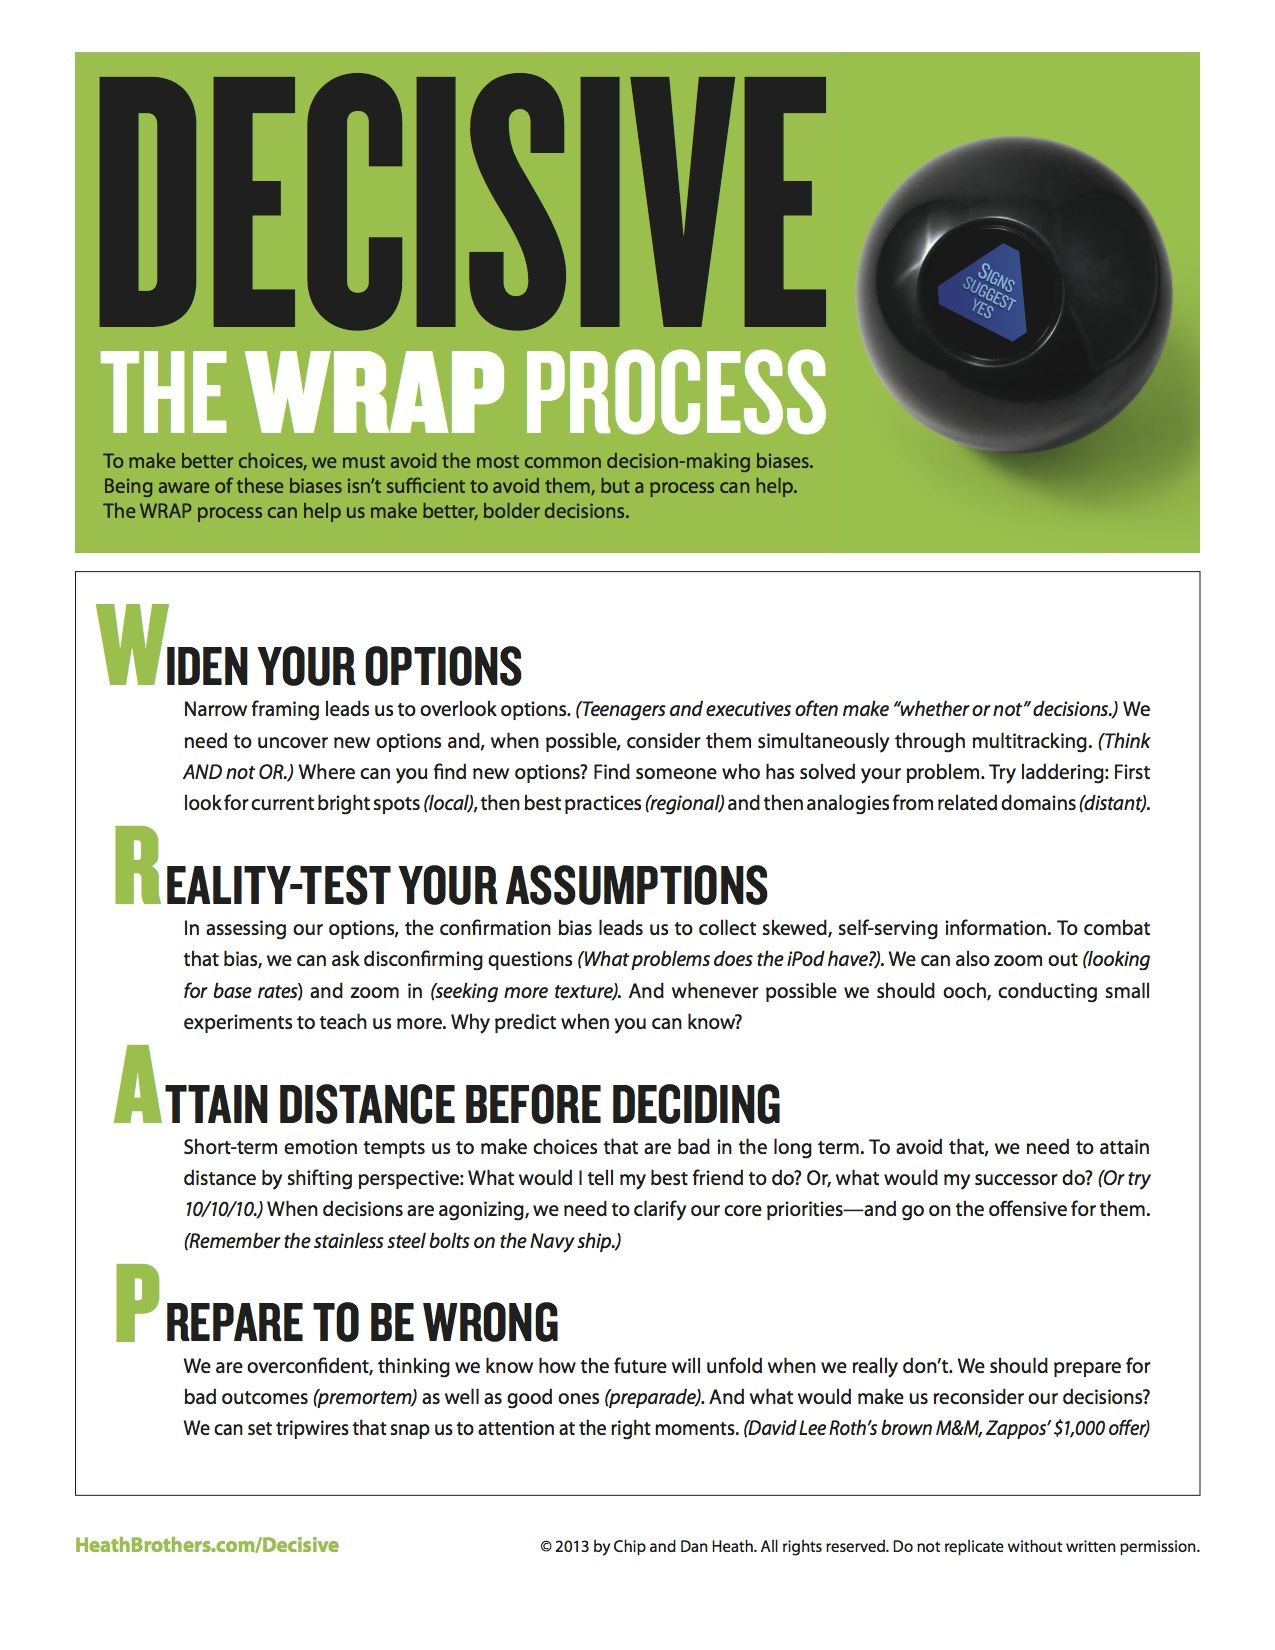 WRAP Process - how to make better decisions in life and work ...